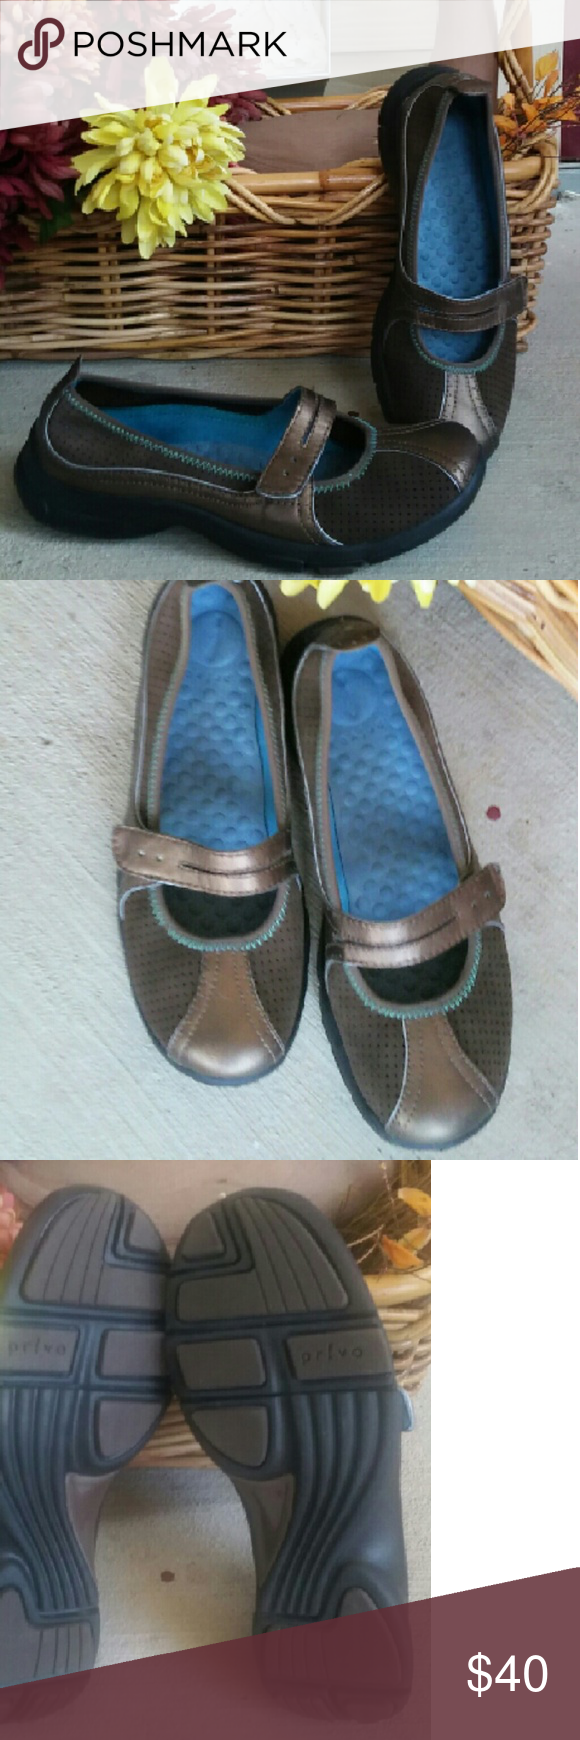 Privo by Clarks Float Mary Janes Like new, chocolate color with bronze finish. Super cute, extremely comfortable and lightweight! Some say these run a bit big. May want to try this brand first to see if it's the case for you. Clarks Privo  Shoes Flats & Loafers